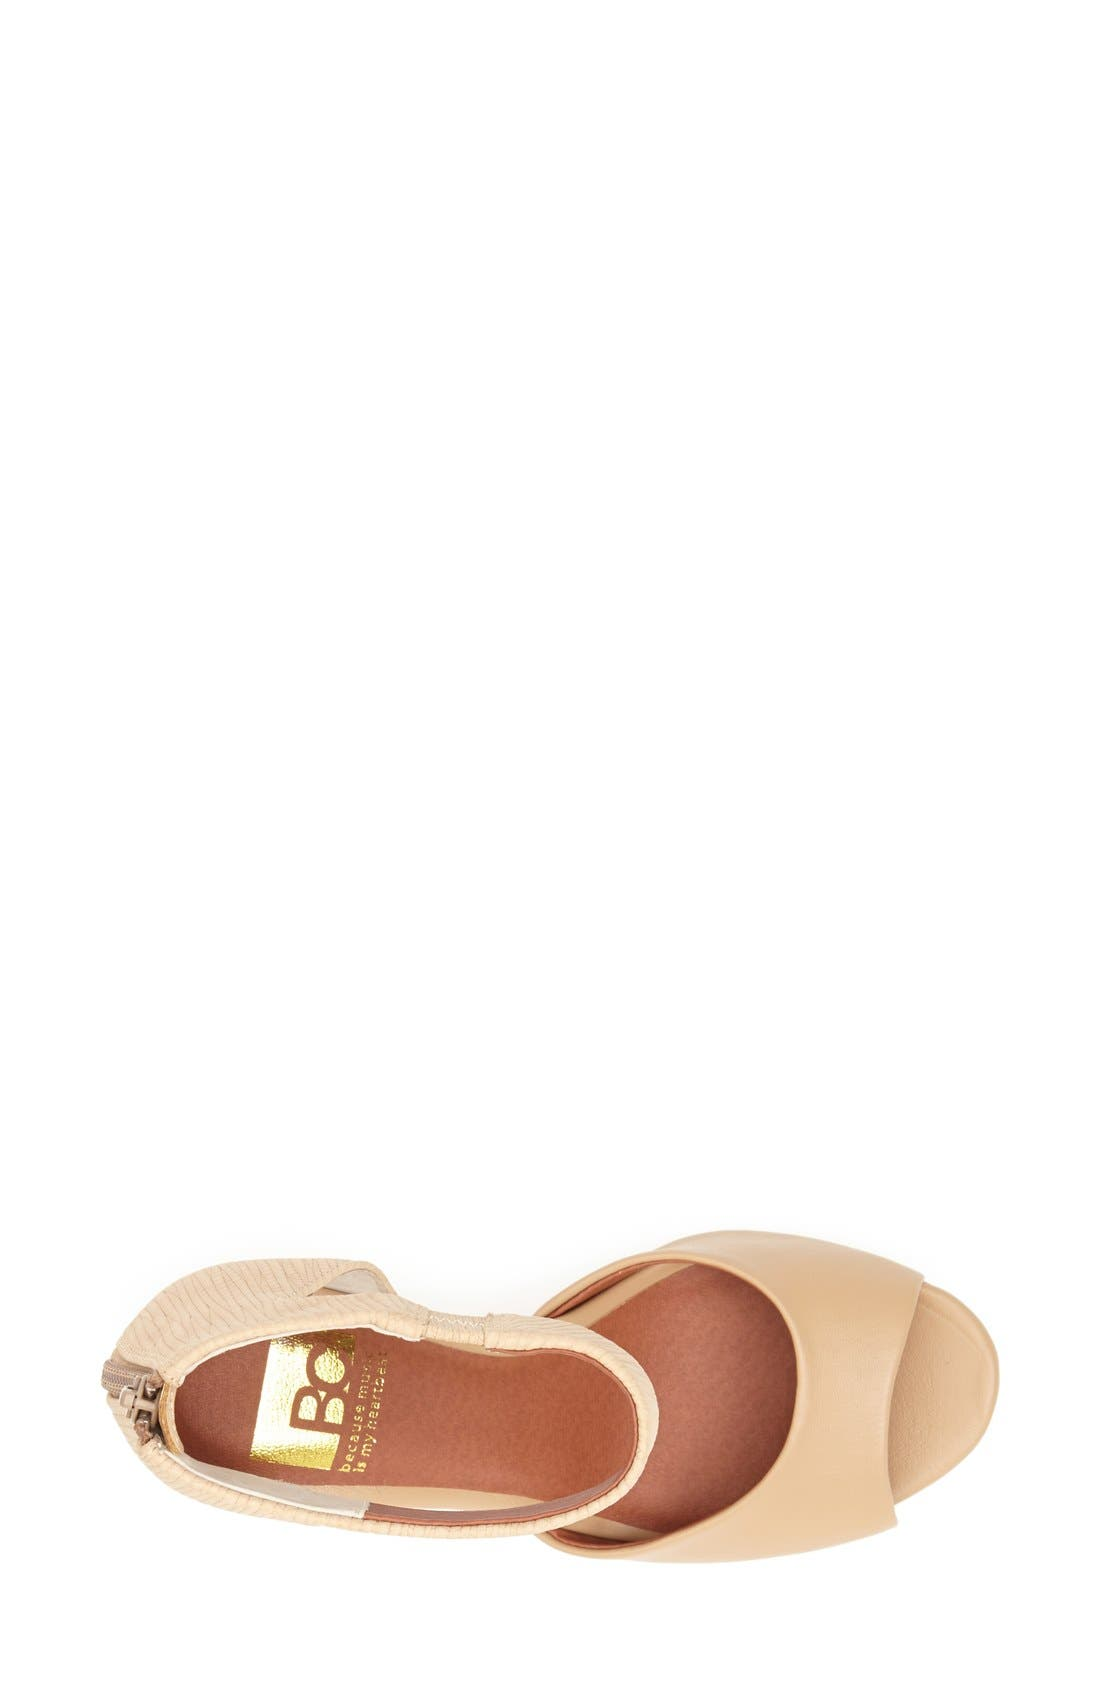 Alternate Image 3  - BC Footwear 'Deep Down' Wedge Sandal (Women)